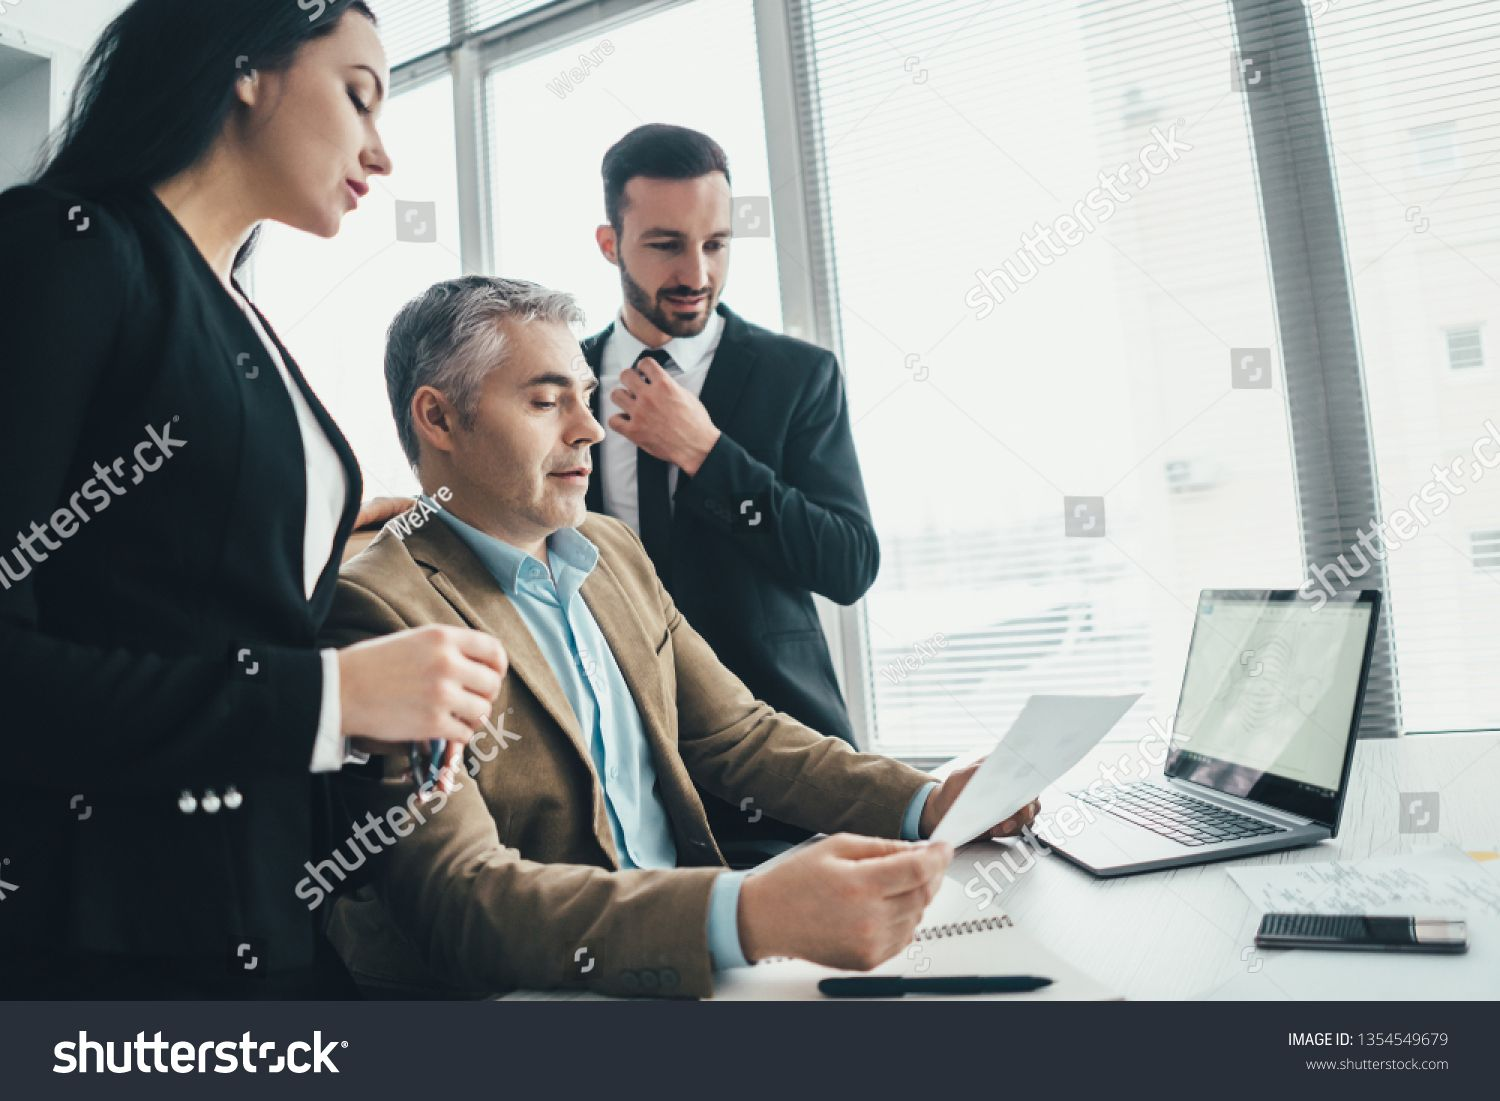 The three business people discussing near the laptop